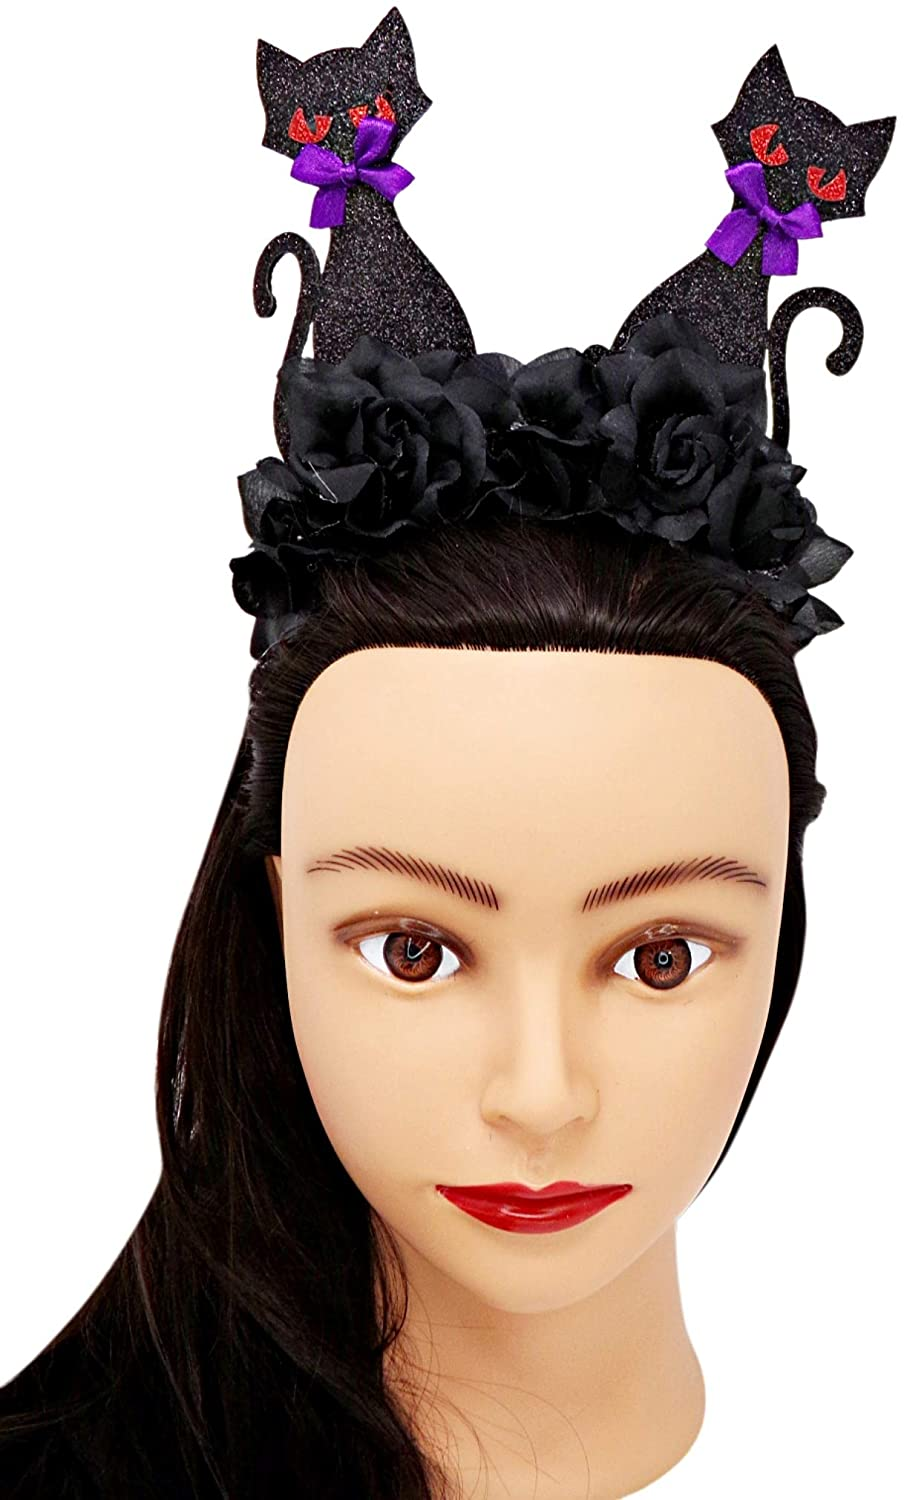 Black Rose Crown with Flowers and Sparkly Cats Fashion Halloween Headband Costume Accessory, One Size